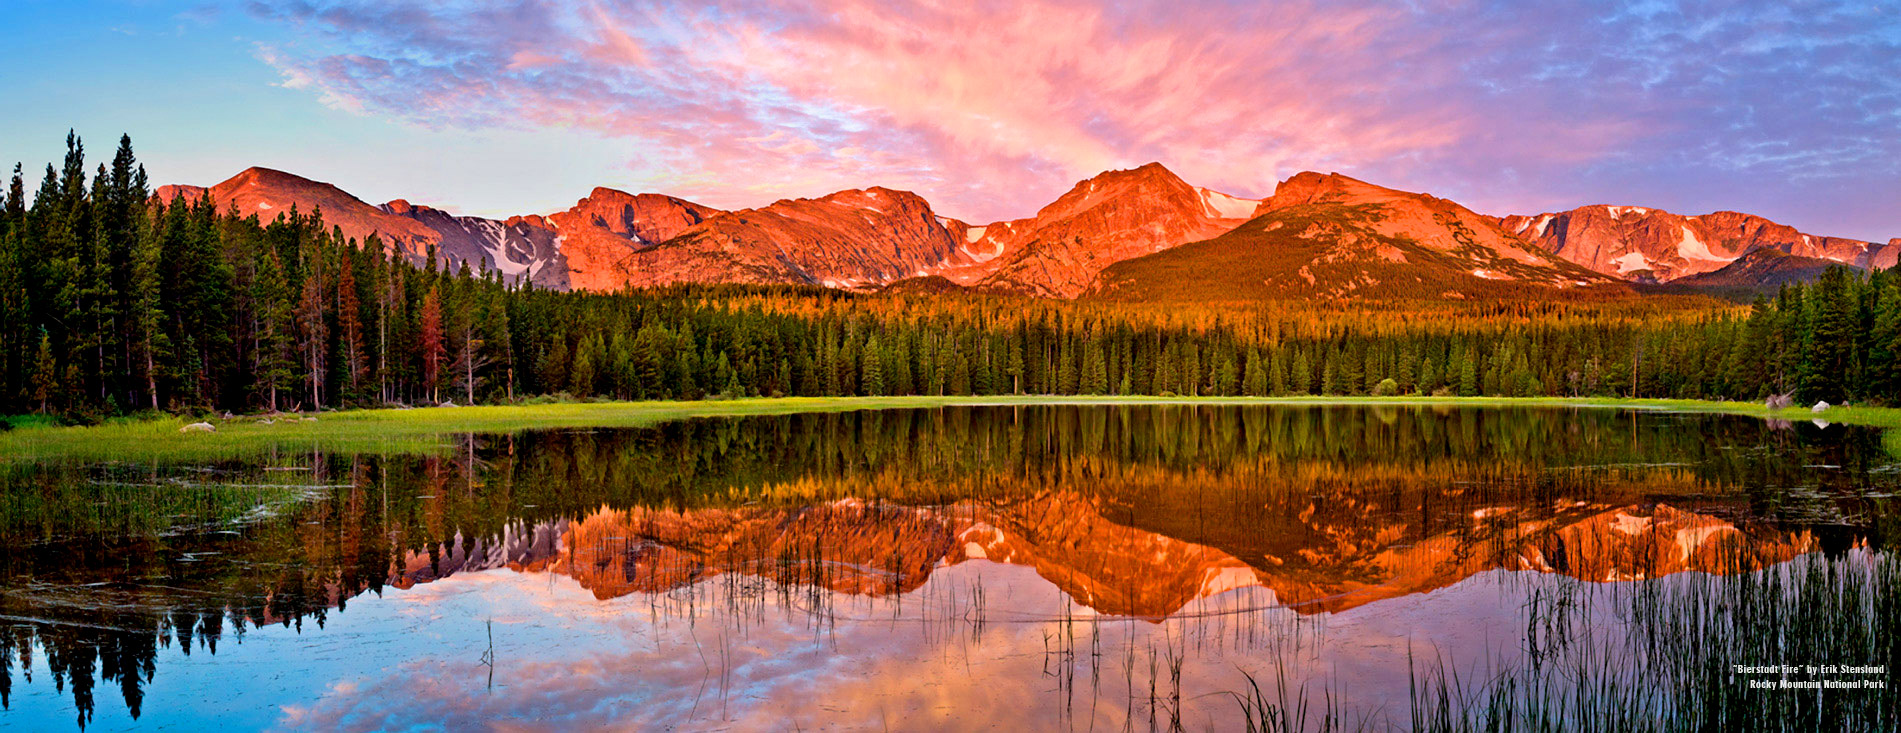 home page hero image bierstadt fire rocky mountain national park